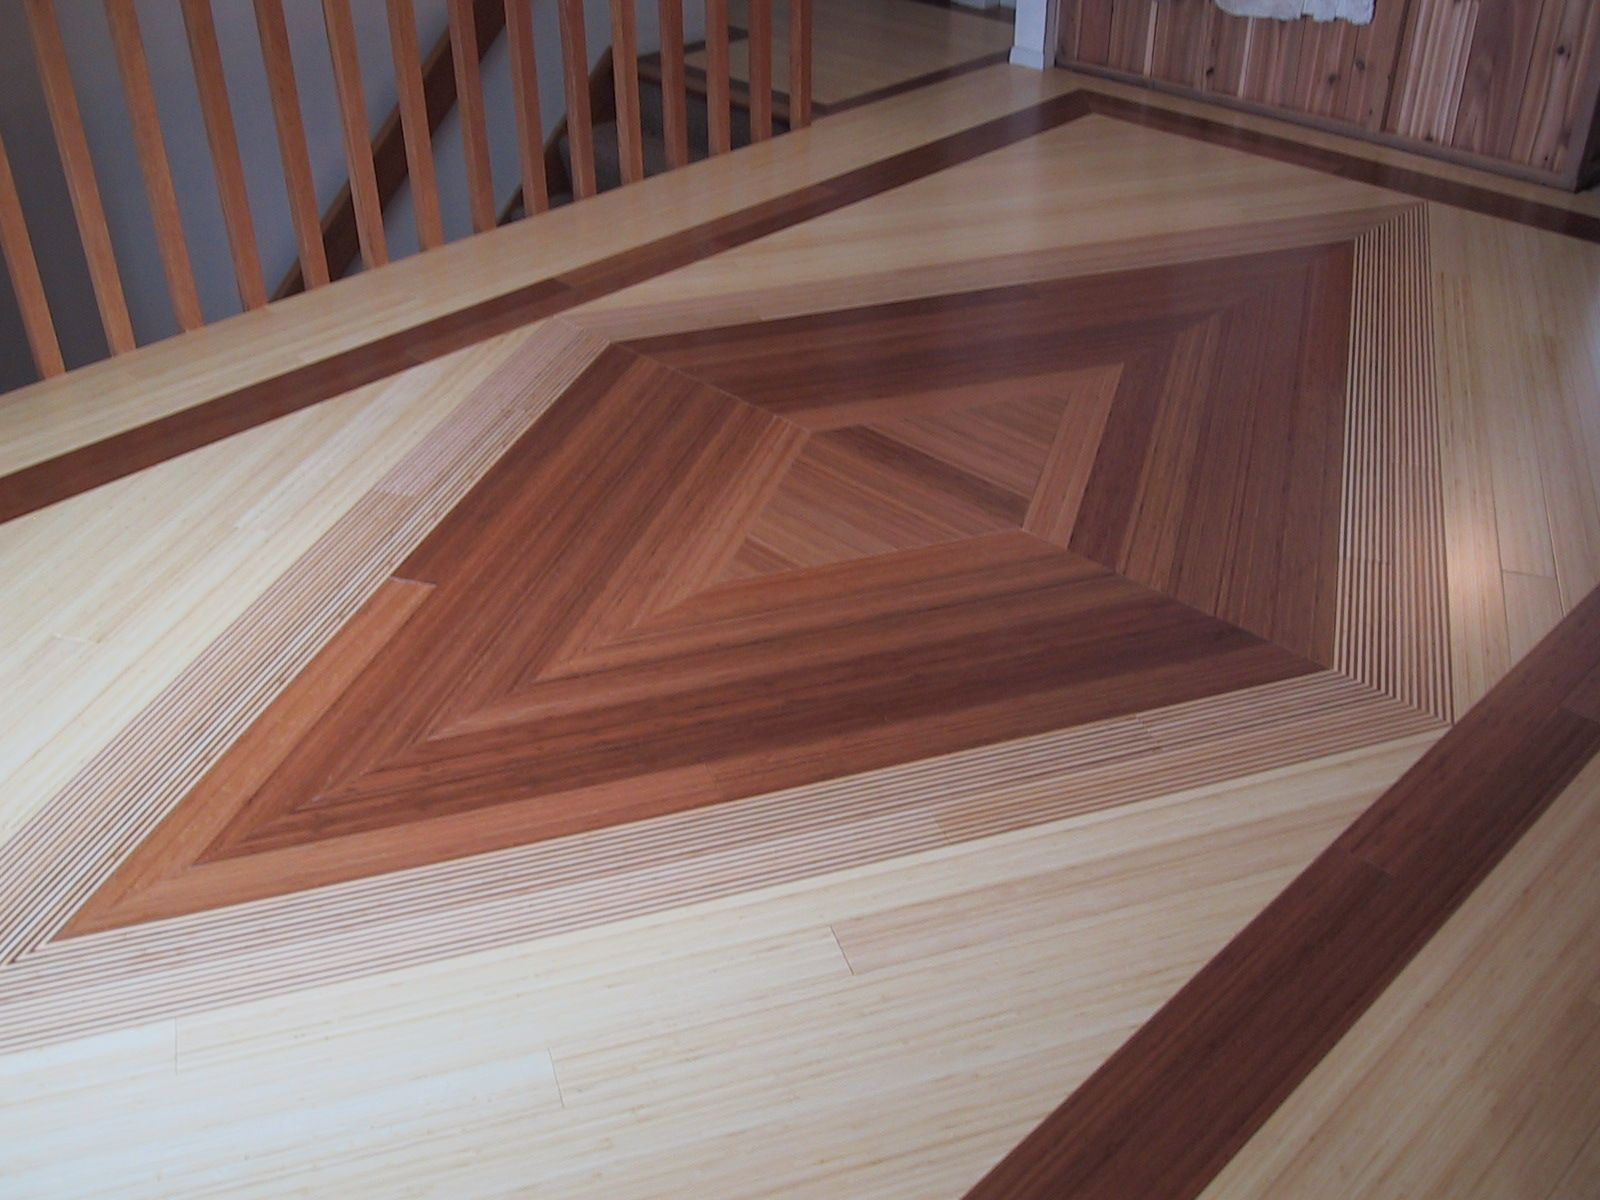 Bamboo Floor Diamond With Border 001 Jpg 1 600 1 200 Pixels